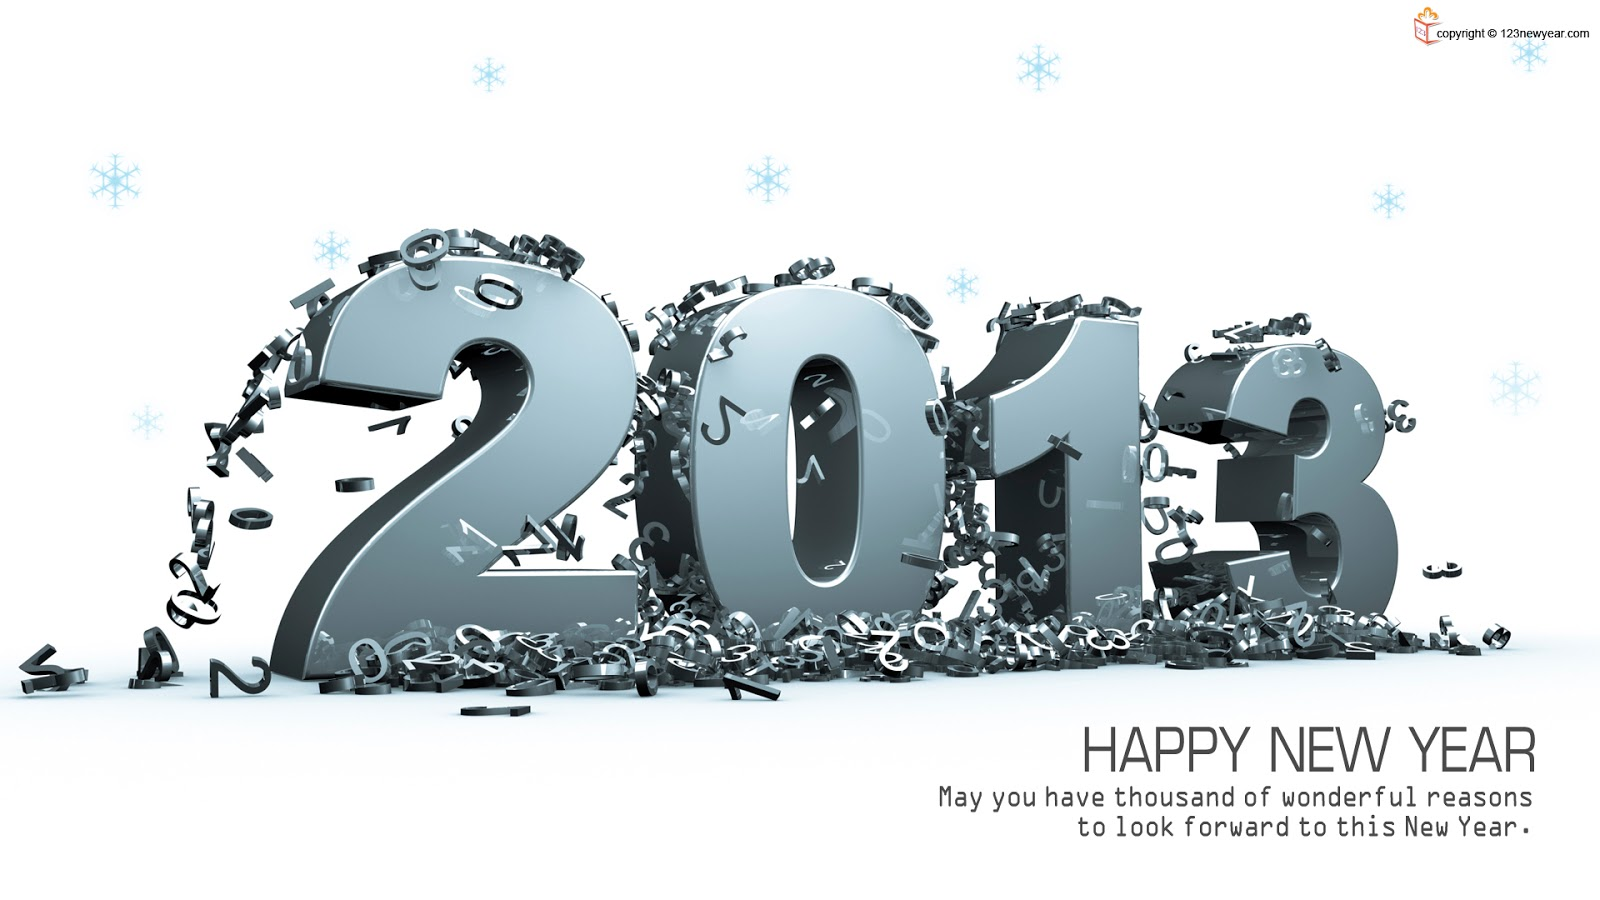 Wallpapers of Happy New Year 2013 | HD Images